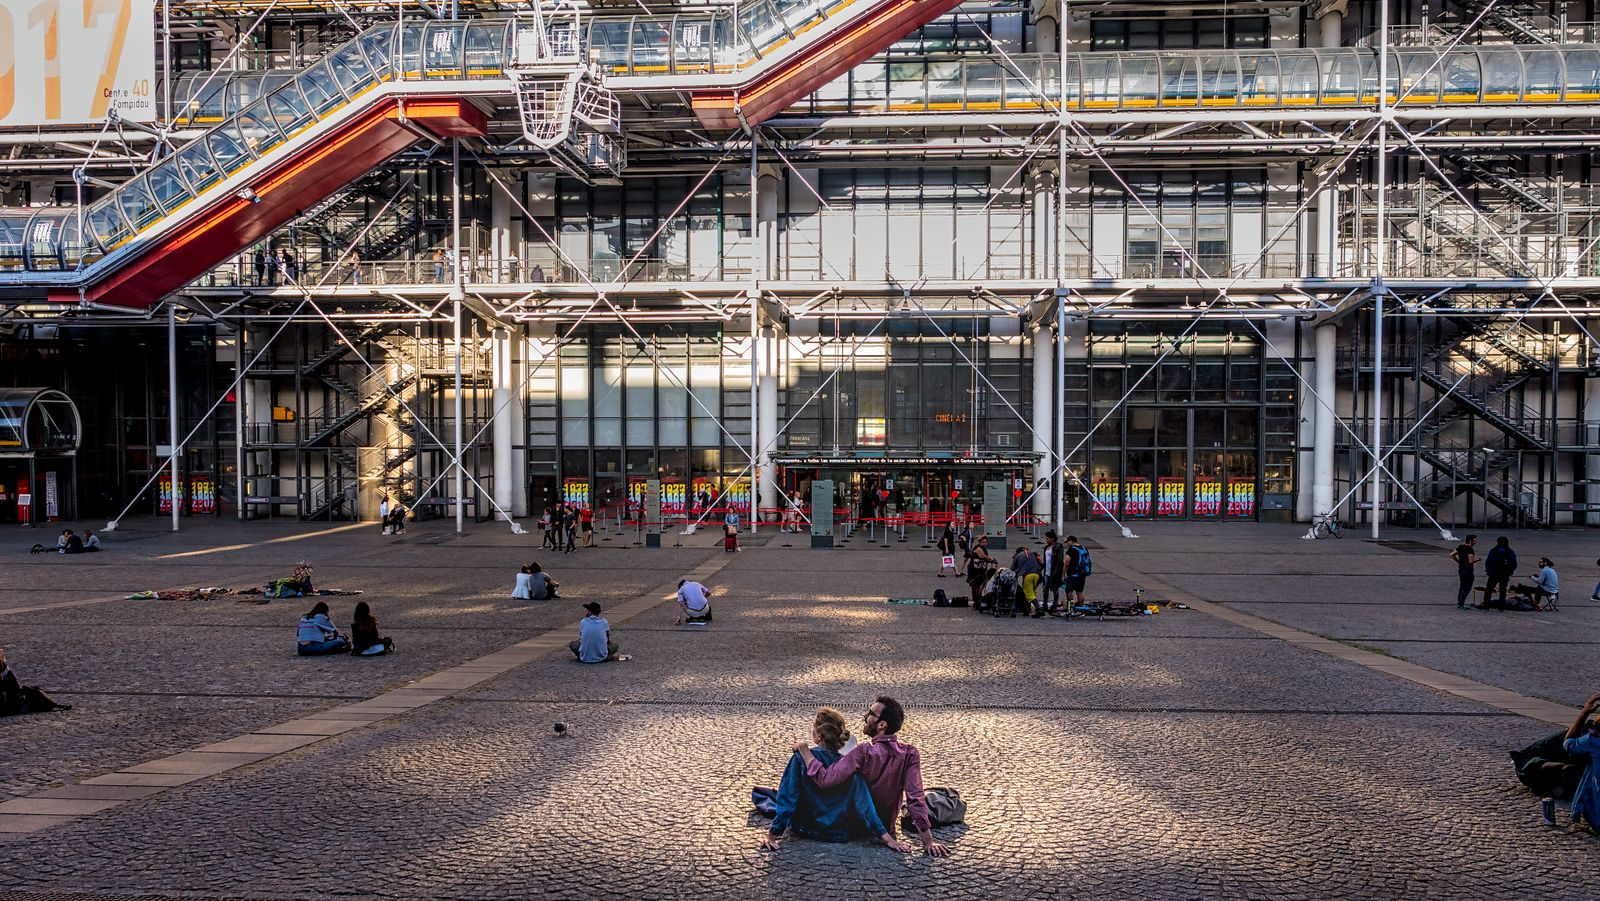 Visiteurs sur la place Georges Pompidou%252C Paris 2017. Boutique du Centre Pompidou%252C femme regardant son smartphone%252C Paris 2017.